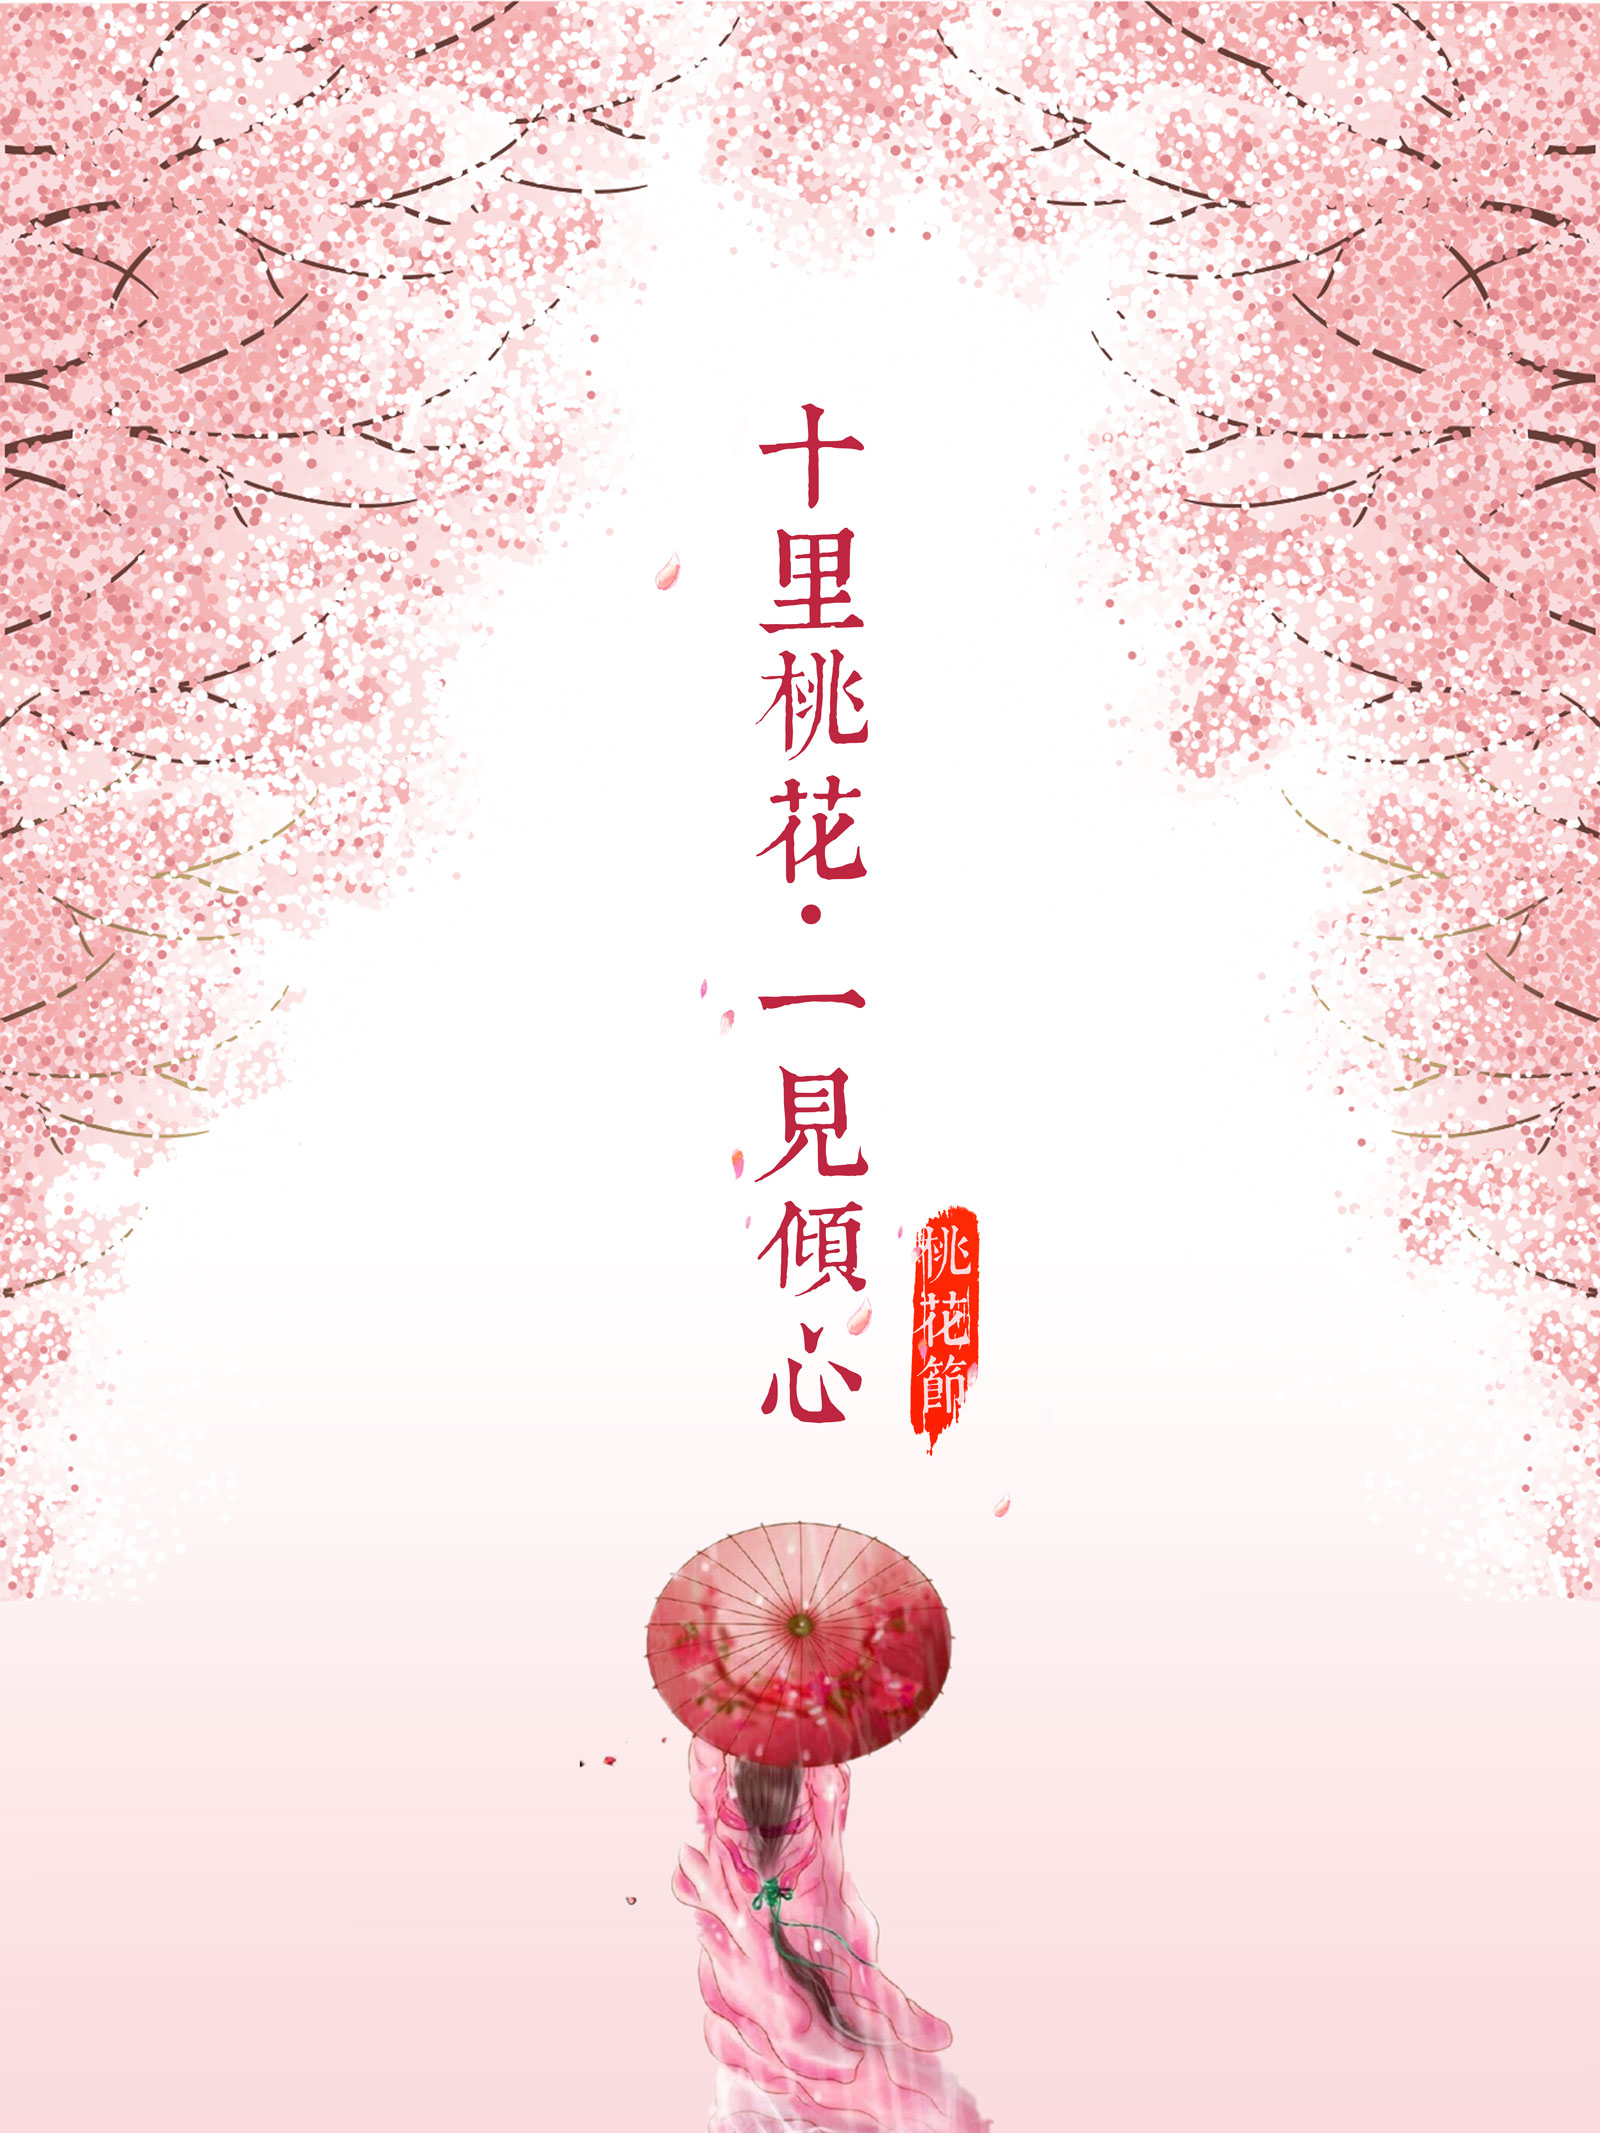 chinesefontdesign.com 2017 03 05 19 29 59 Romantic peach blossom PSD layered design   China PSD File Free Download